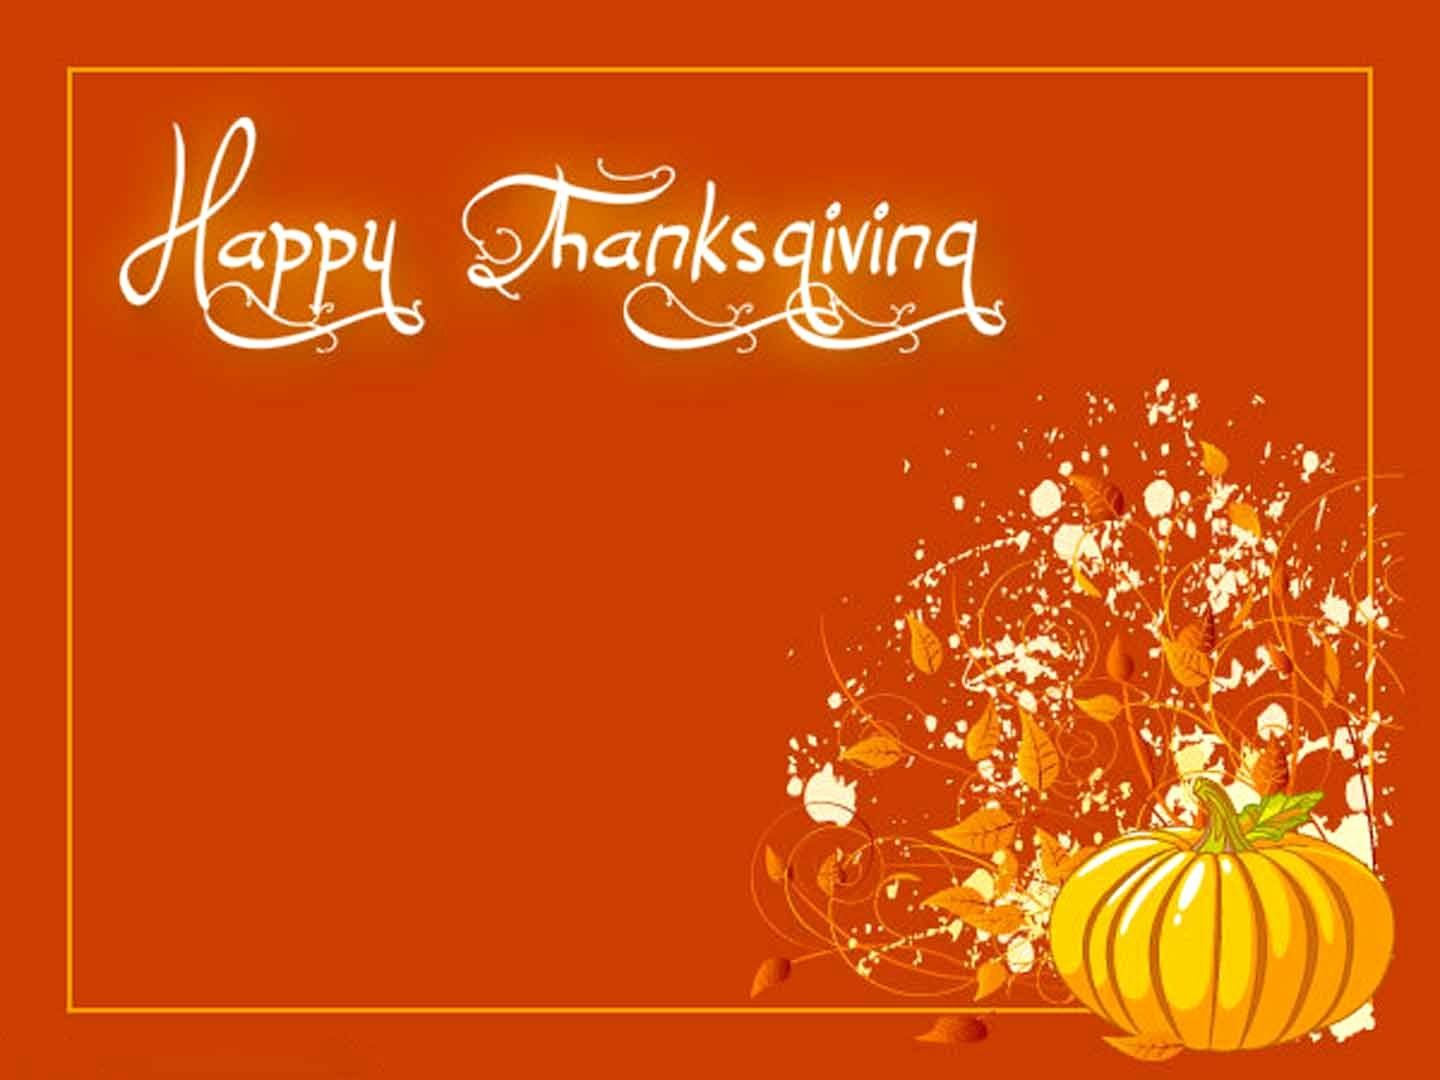 Happy Thanksgiving Wallpapers Best Of Happy Thanksgiving Wallpapers Wallpapers Cave 2019